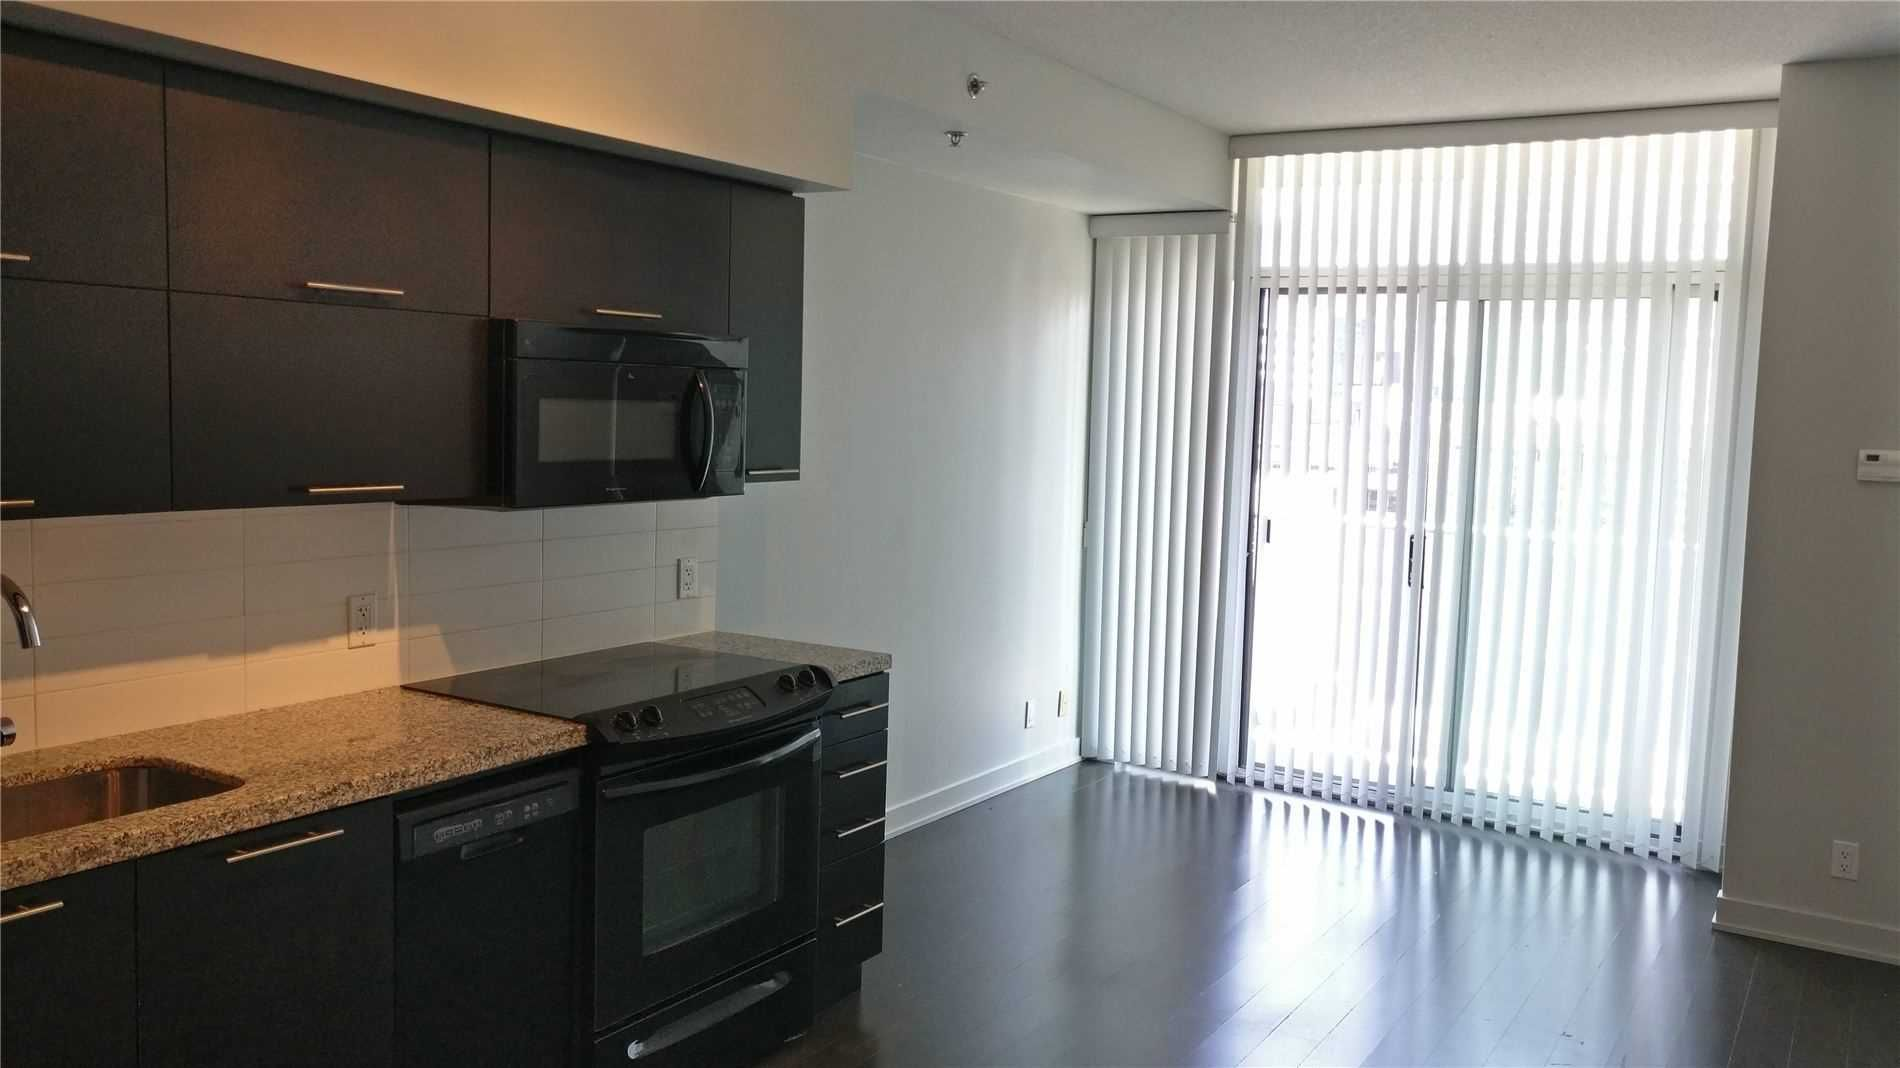 21 Nelson St, unit 823 for rent in Toronto - image #1